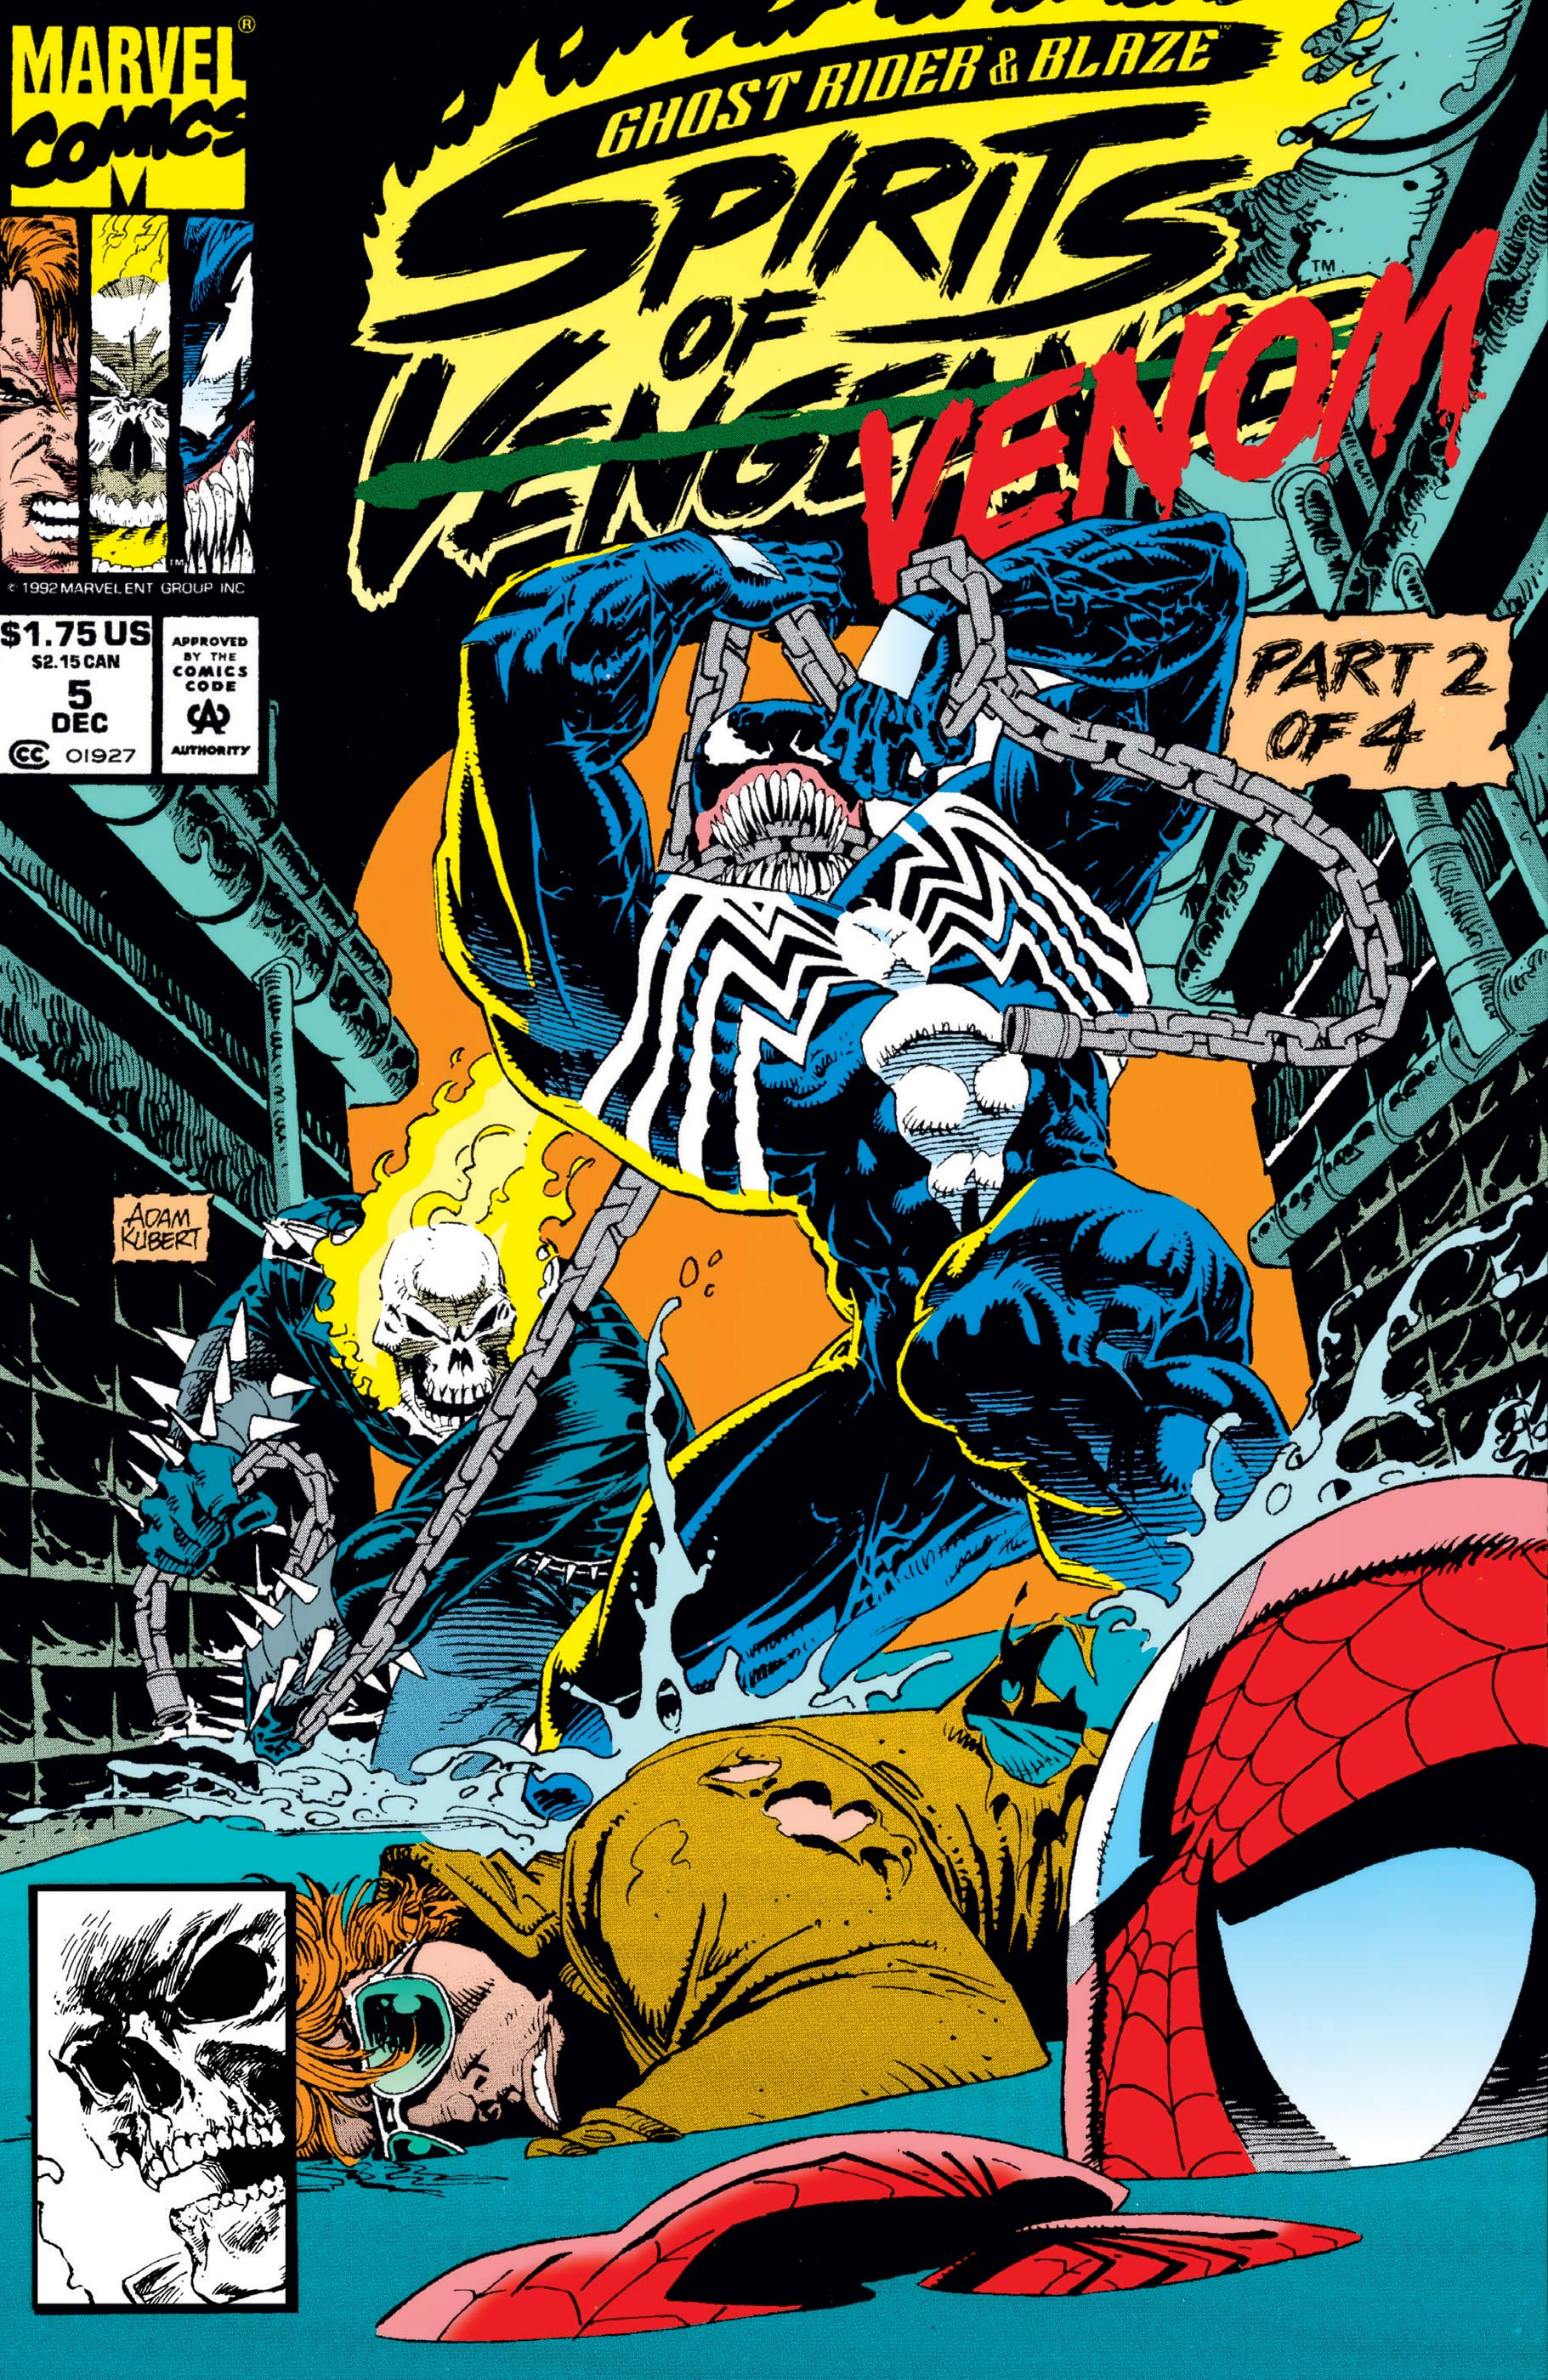 Ghost Rider/Blaze: Spirits Of Vengeance (1992) #5